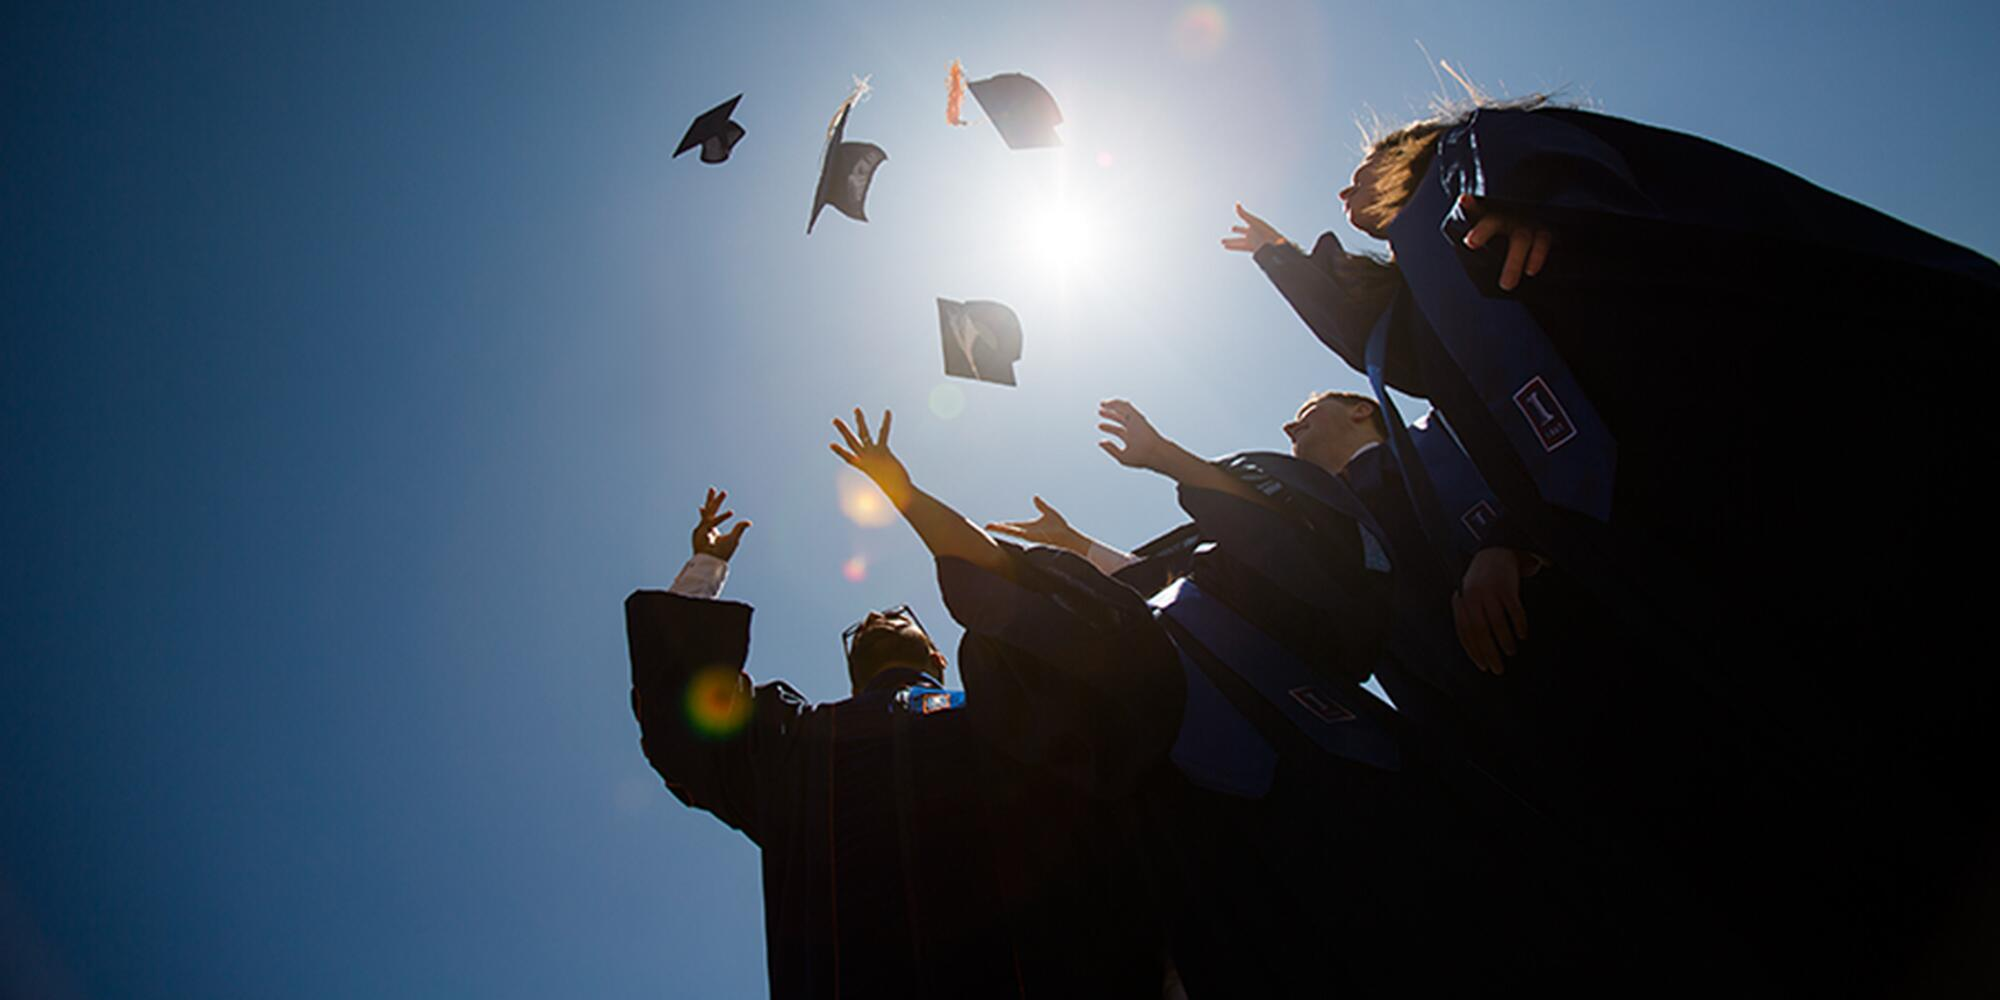 Students toss their graduation caps into the air.